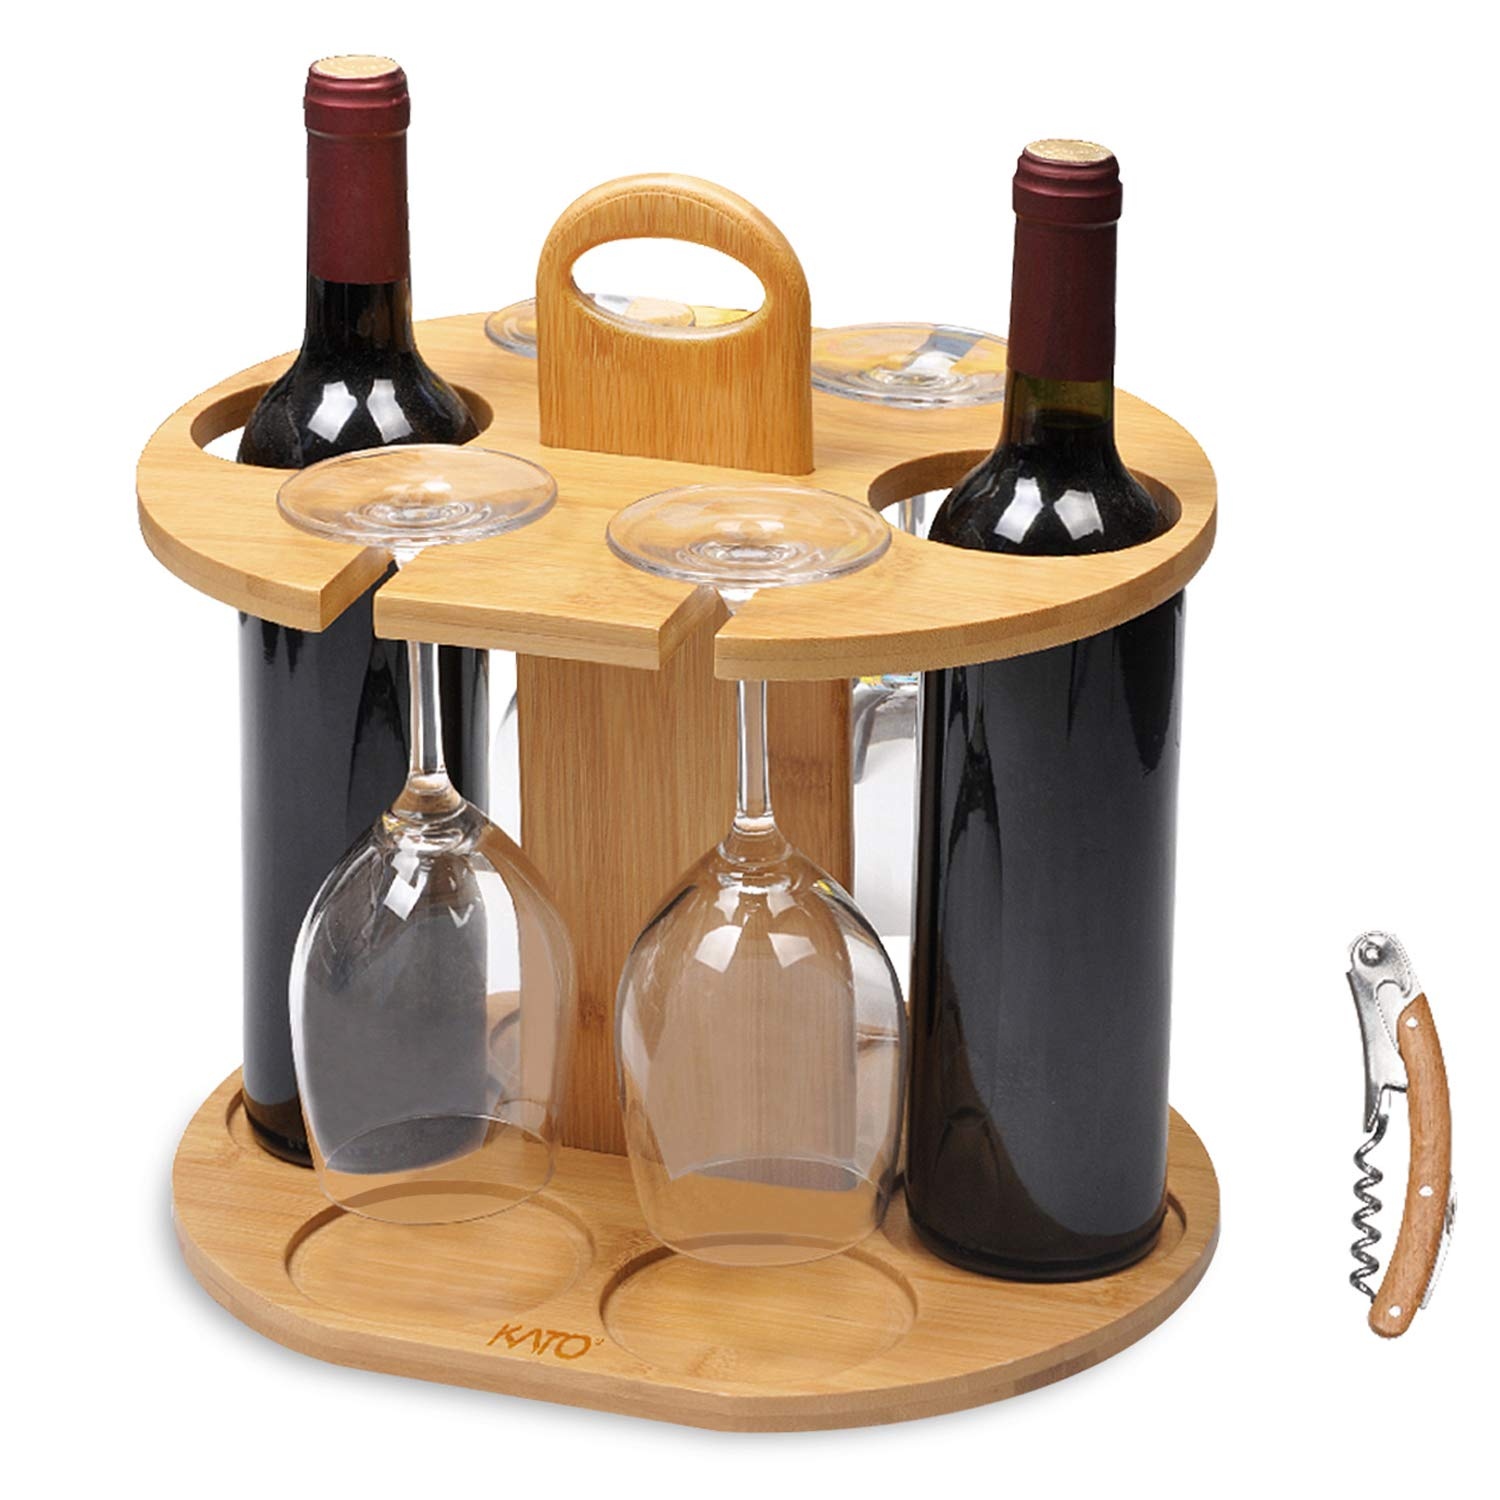 Wine Bottle Holder Glass Cup Rack w/Handle Free Wood Handle Corkscrew - Wine Organizer Bamboo Stand Countertop Tabletop Display by Tirrinia